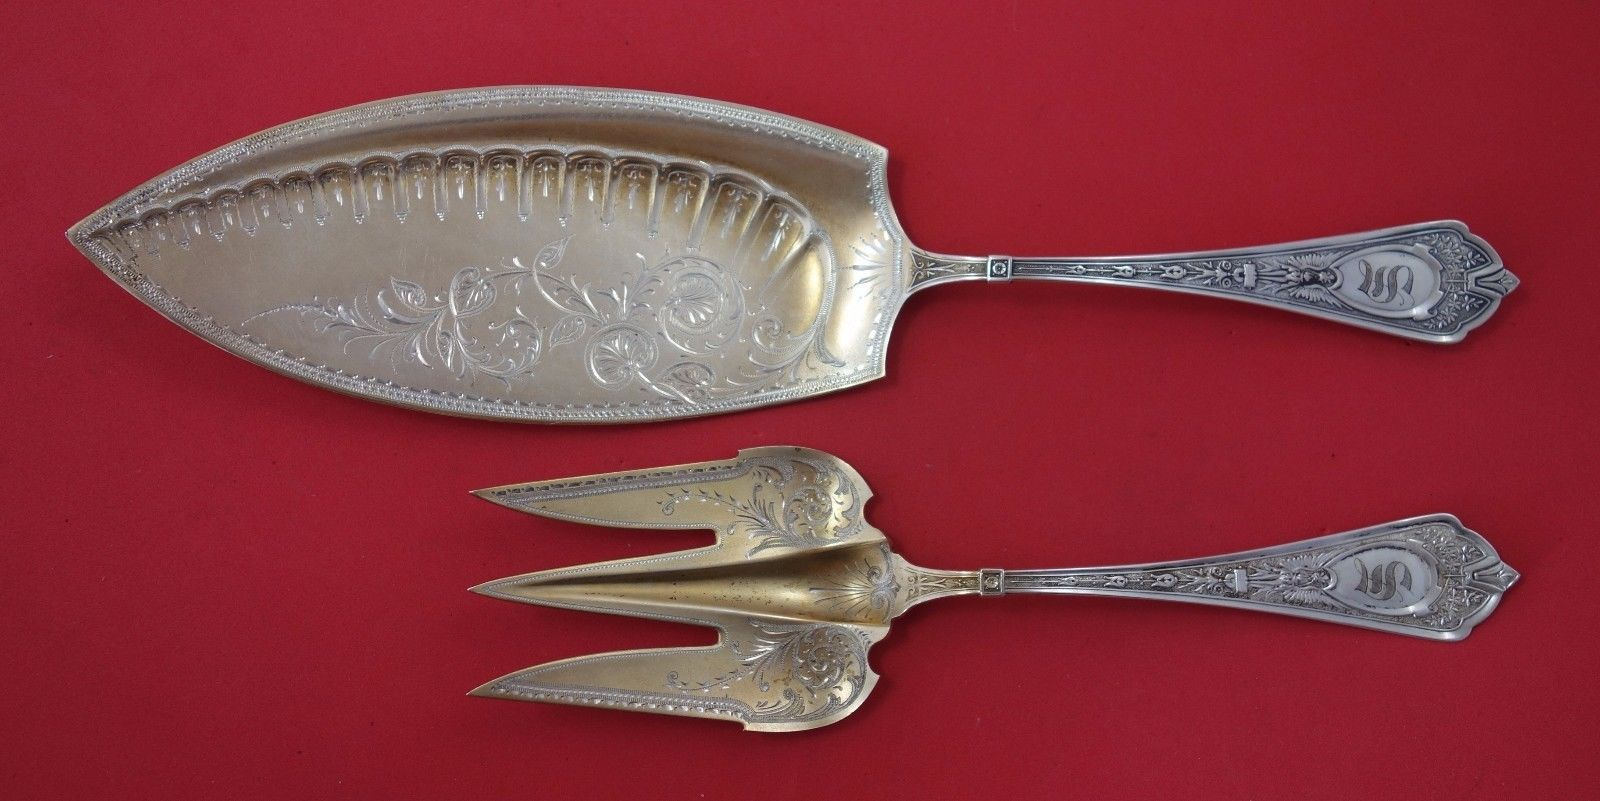 Primary image for Cleopatra by Schulz & Fischer Sterling Silver Fish Serving Set GW BC 3-Tine Fork